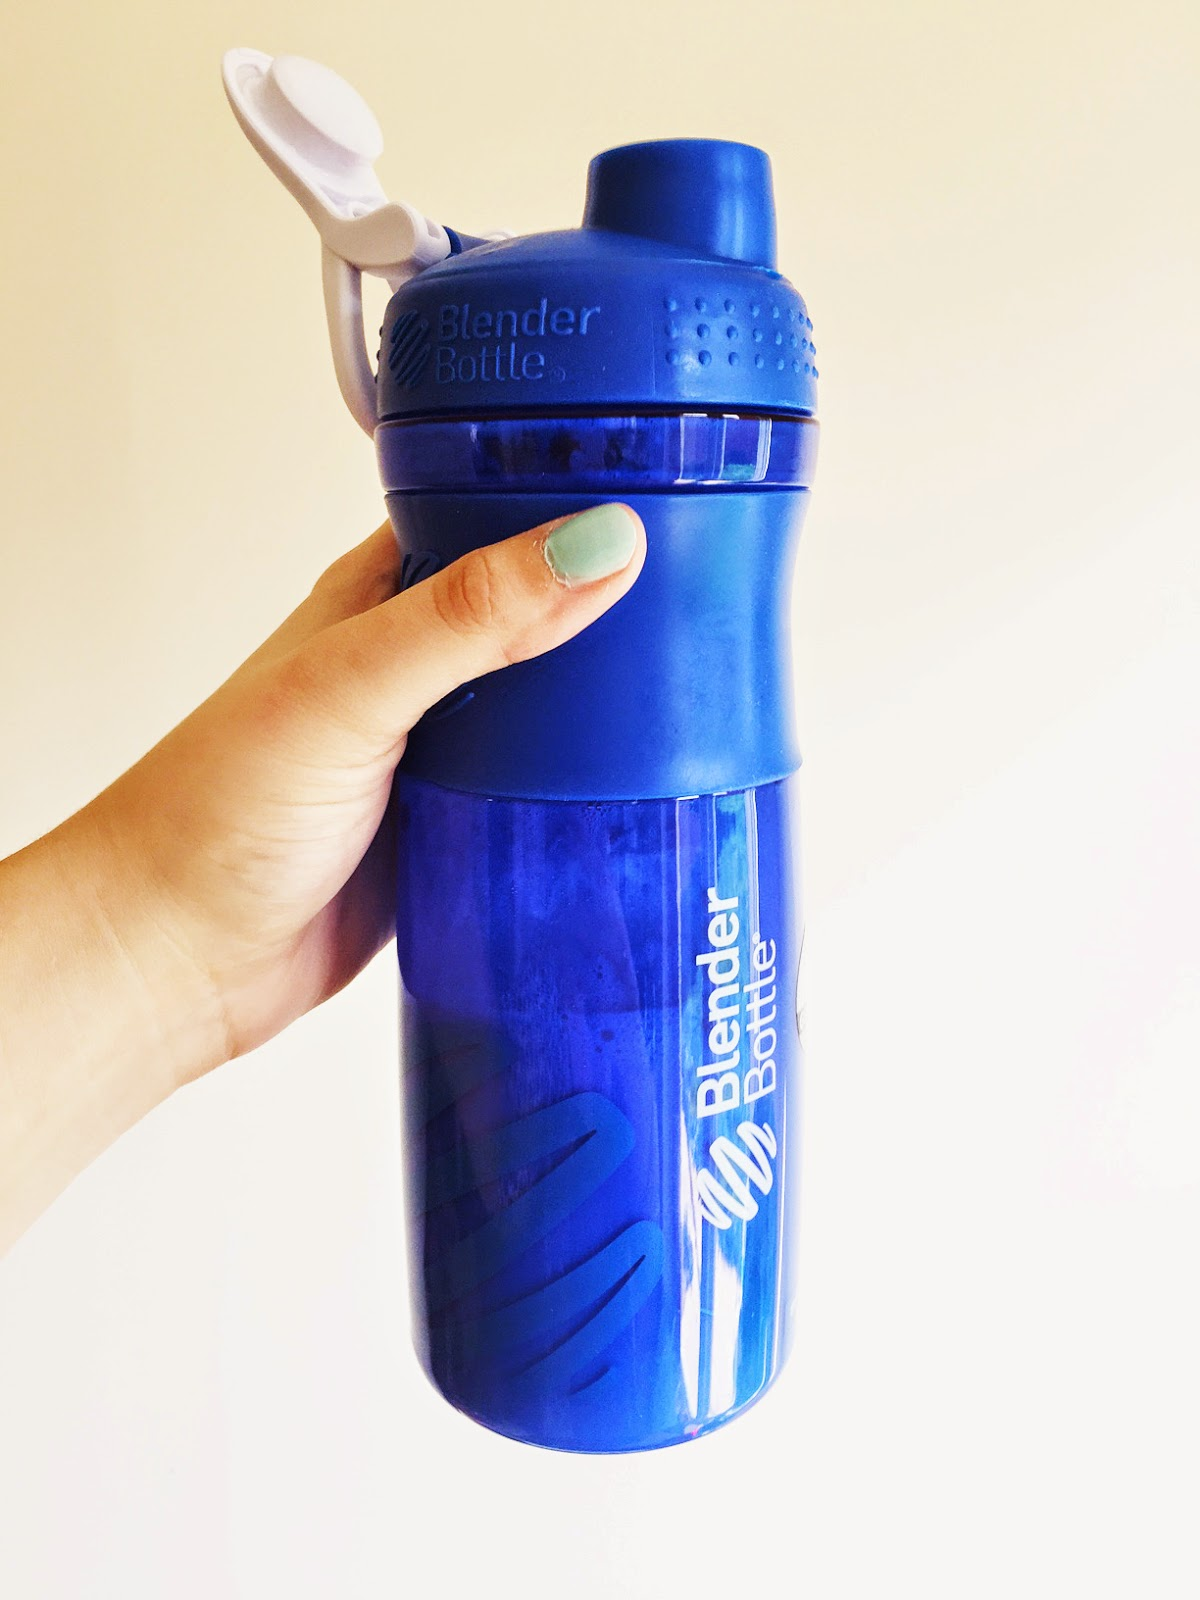 Blender Bottle with Exante Deliciously Different Shake